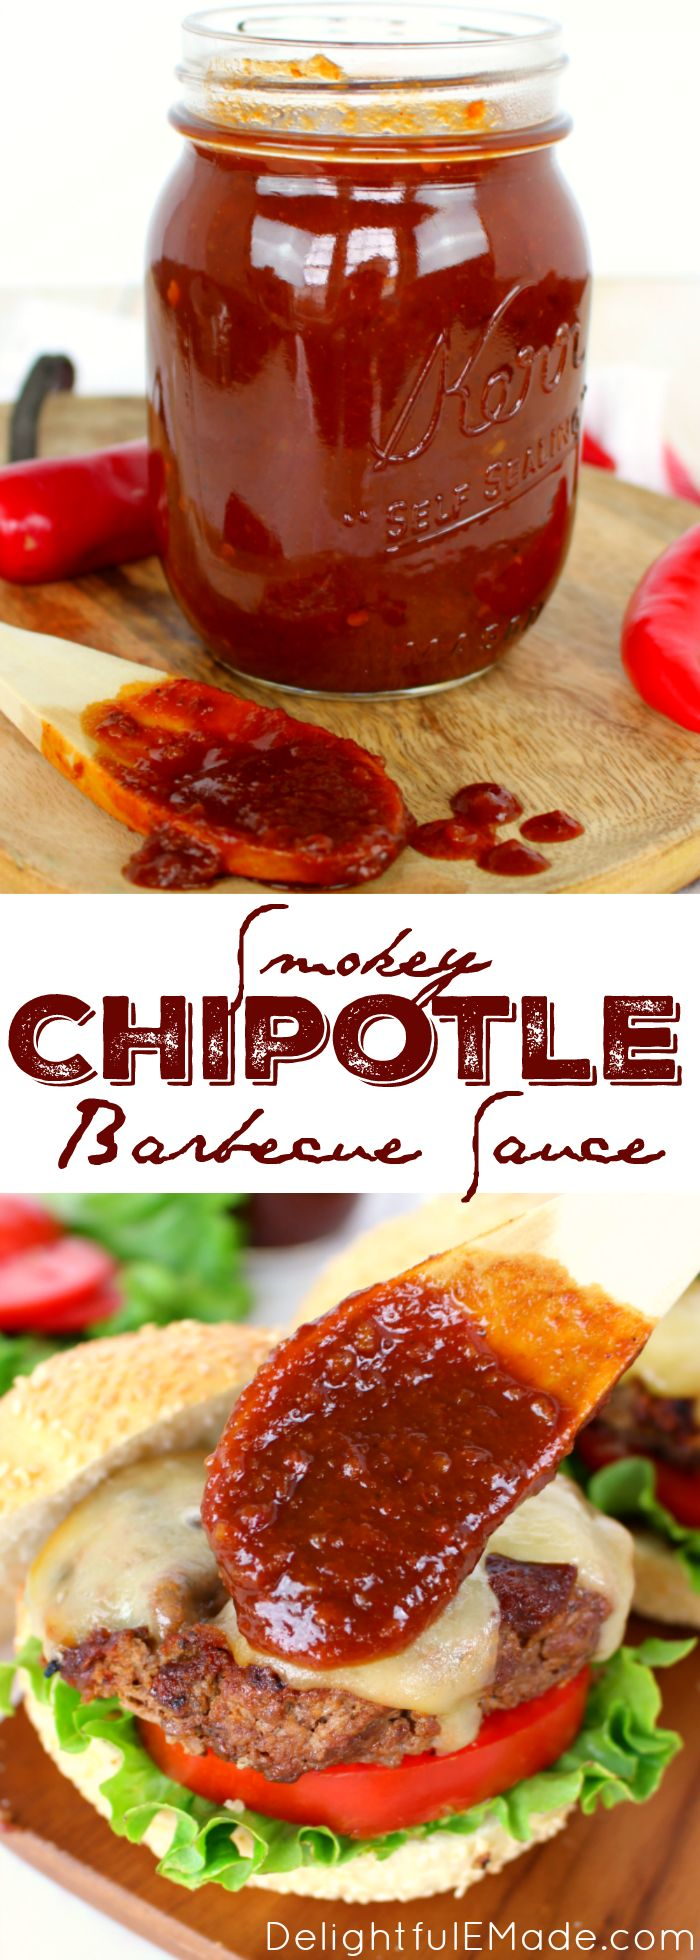 The perfect recipe for smokey, spicy & sweet barbecue sauce!  Fantastic for burgers, chicken, pork chops and ribs, this simple BBQ sauce will be your new go-to recipe for grilling season! == I HAVE TO TRY THIS, WOW SOUNDS DELICIOUS :)  ===